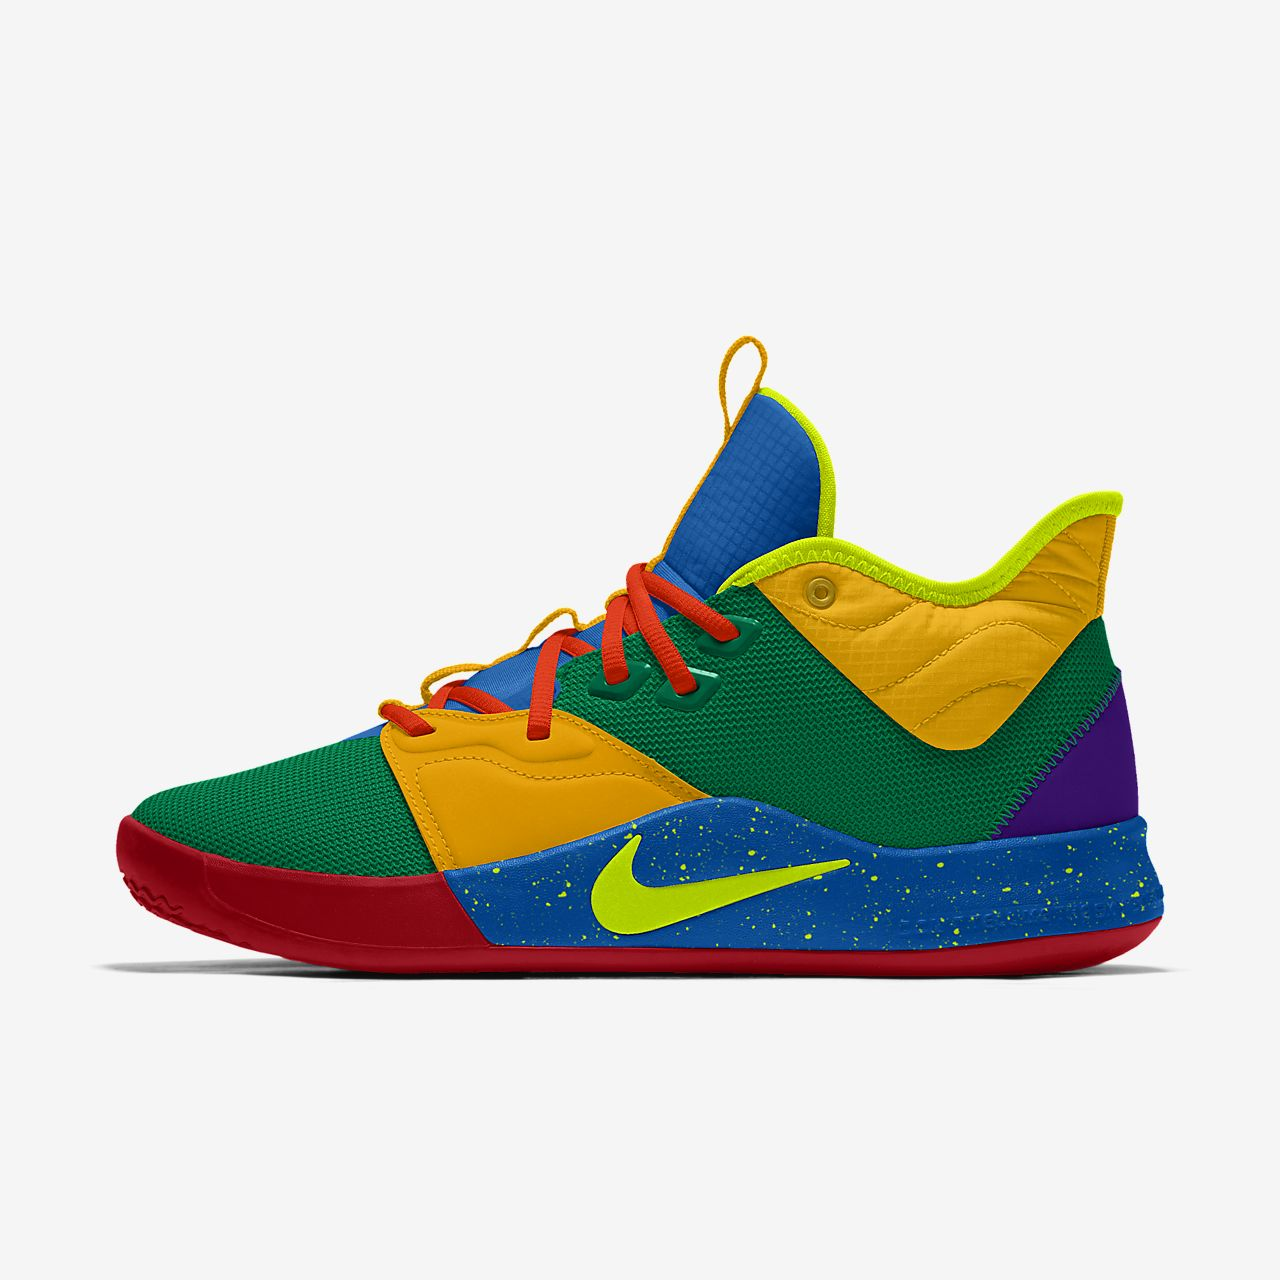 PG 3 By You personalisierbarer Basketballschuh